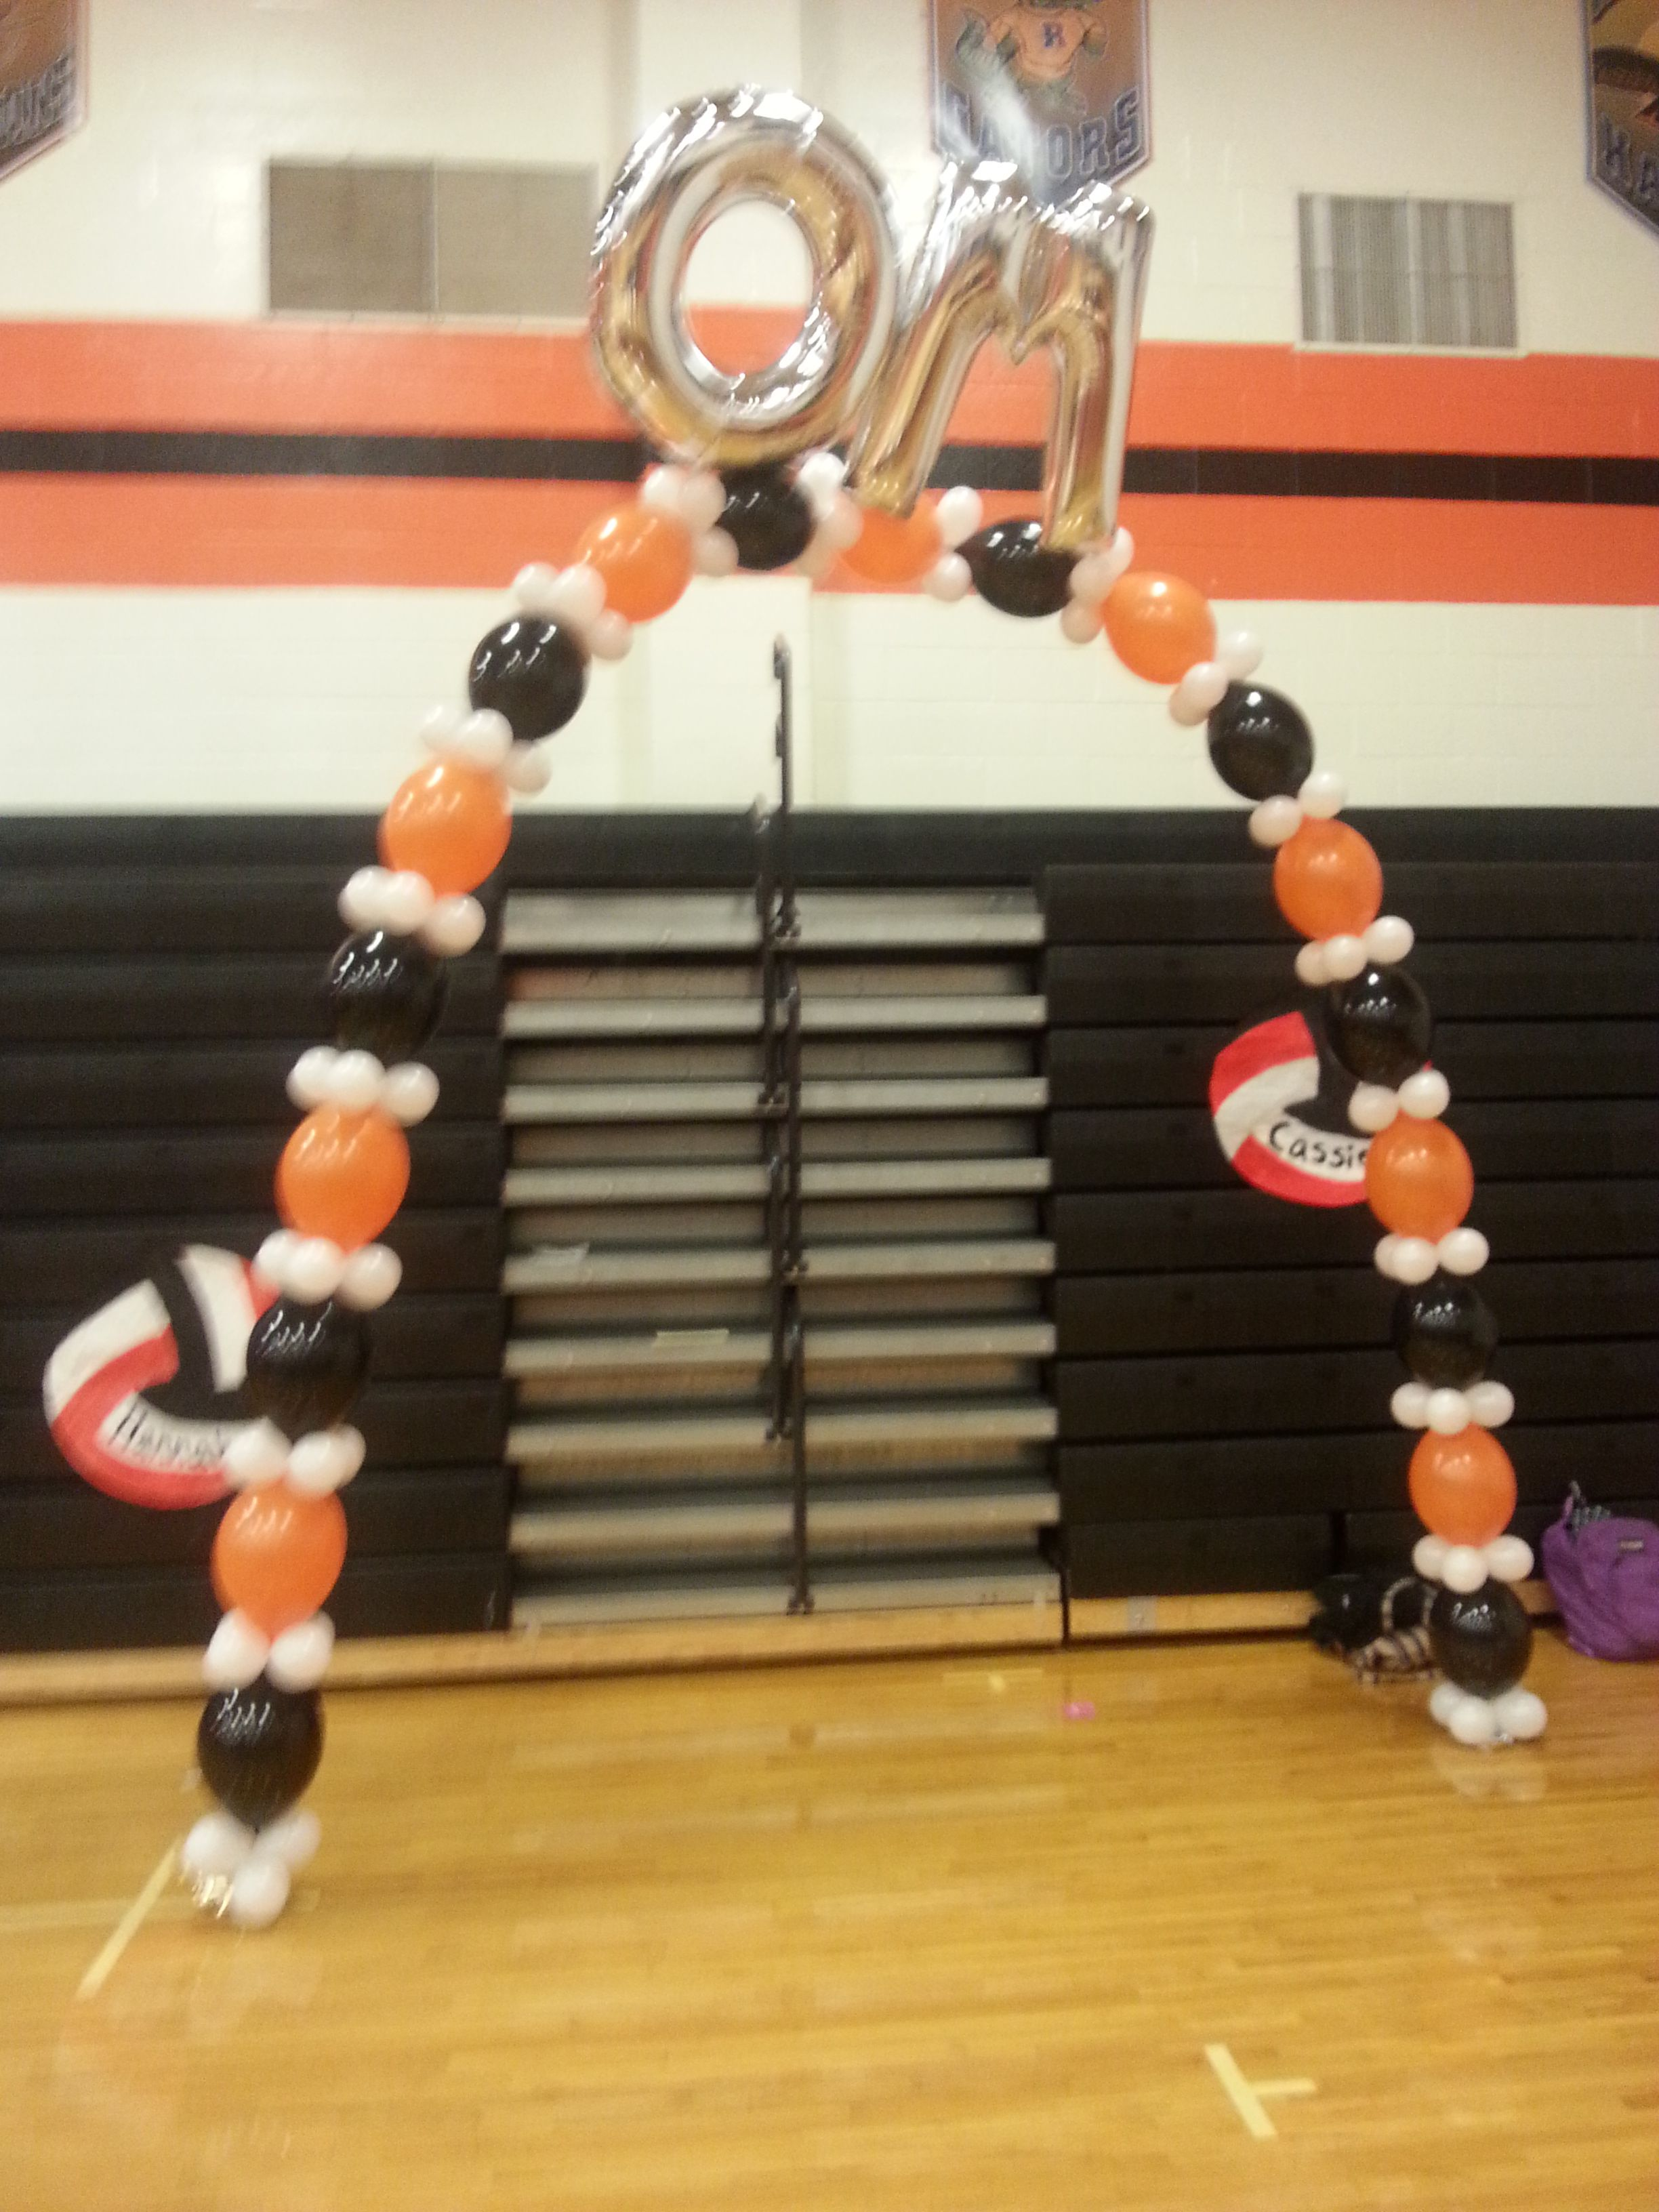 Balloon Arch LinkOLoon Balloon Arch High School Senior Game